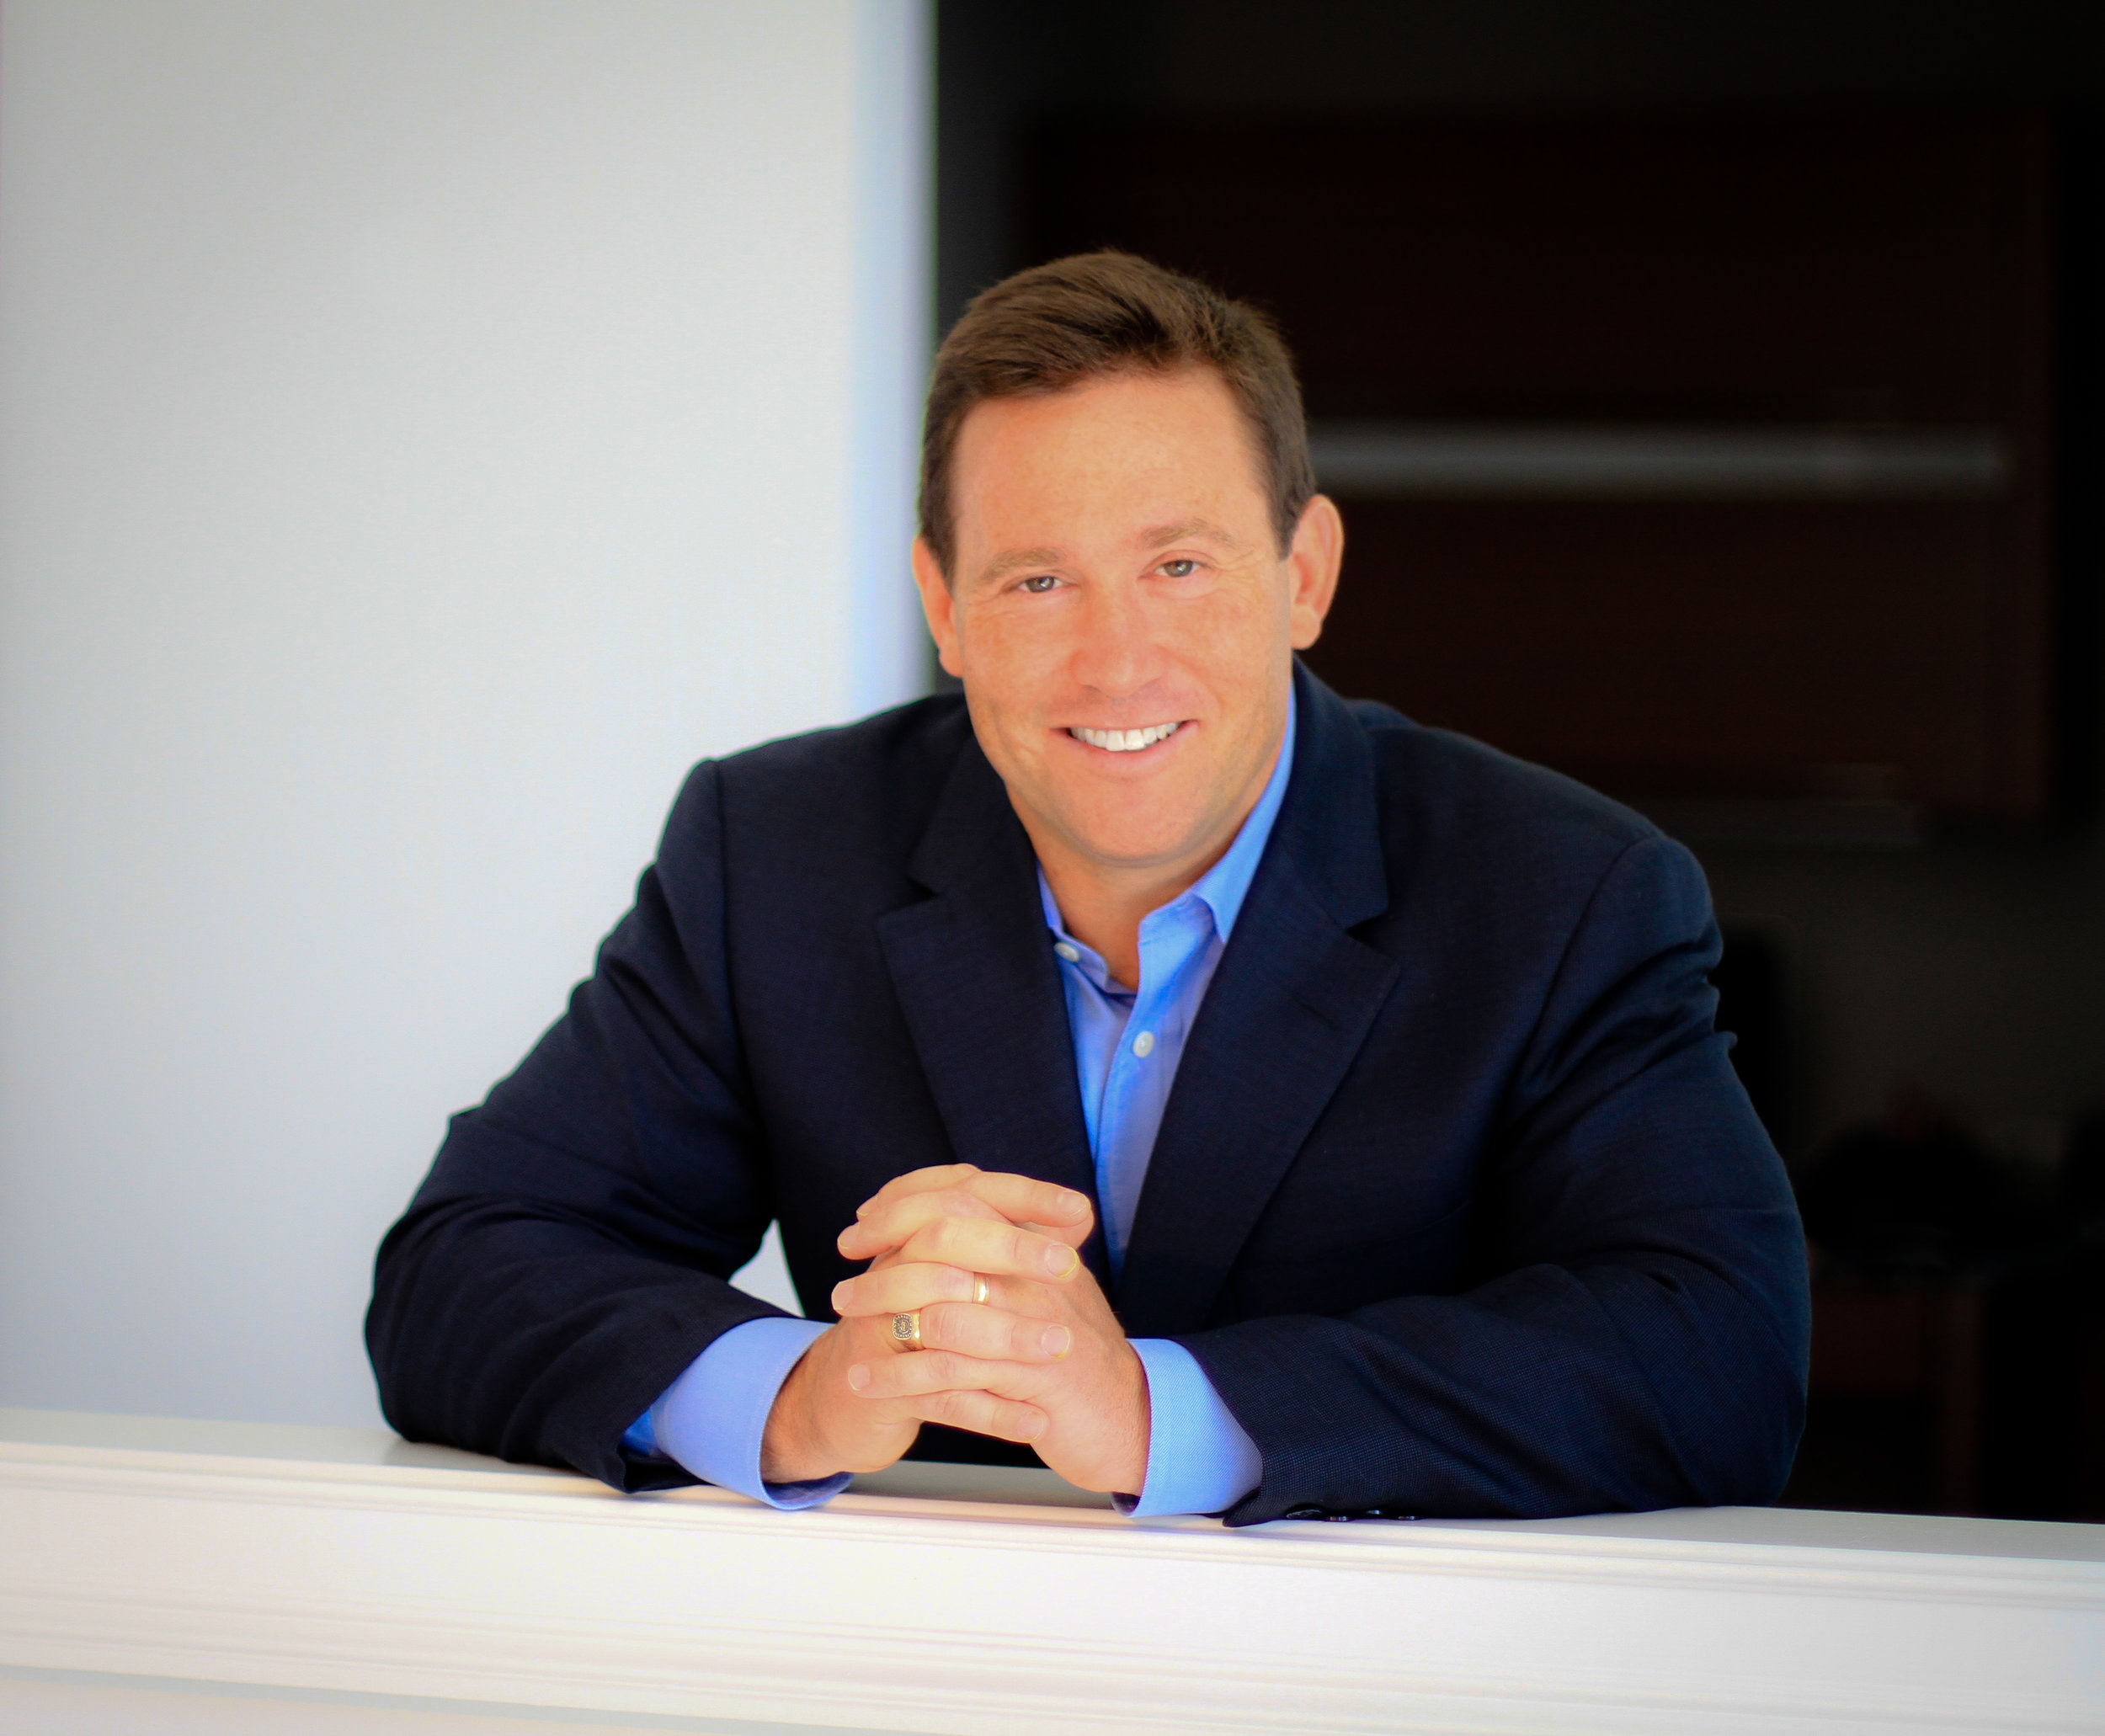 Jon Gordon, Author of The Energy Bus